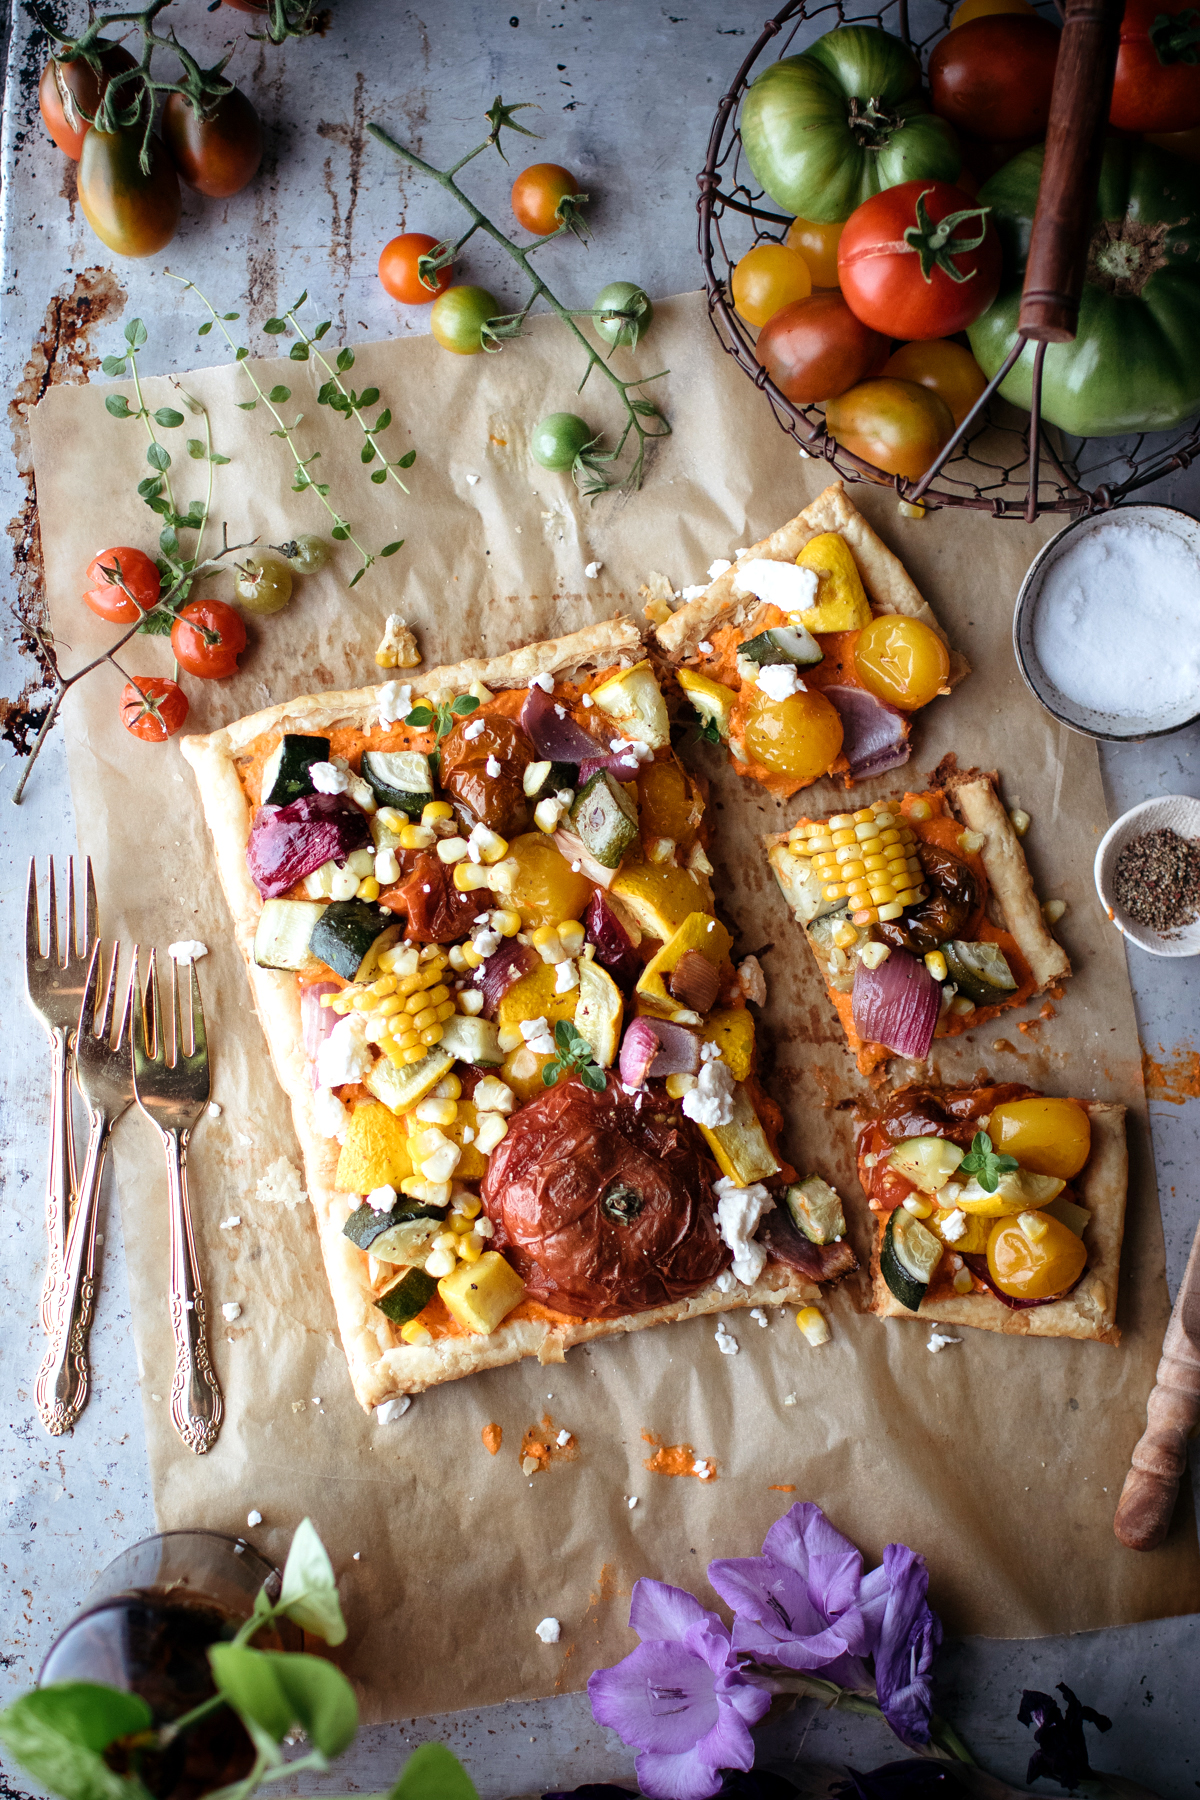 Vegetarian Garden Tart With Roasted Red Pepper & Feta Spread Recipe